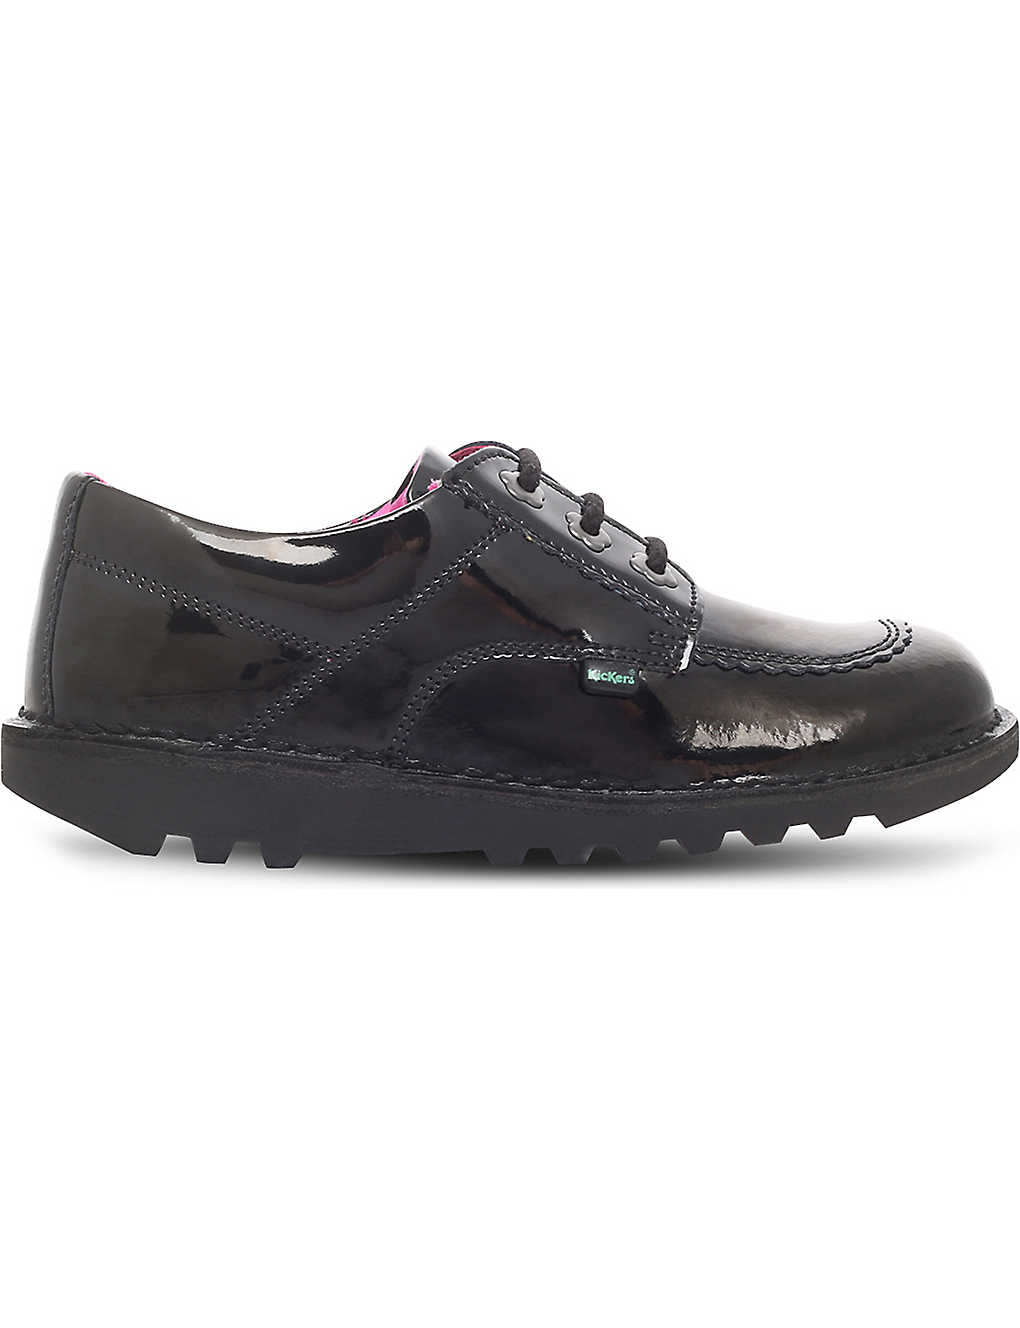 46dd637f KICKERS - Kick lo patent leather shoes 6-9 years | Selfridges.com